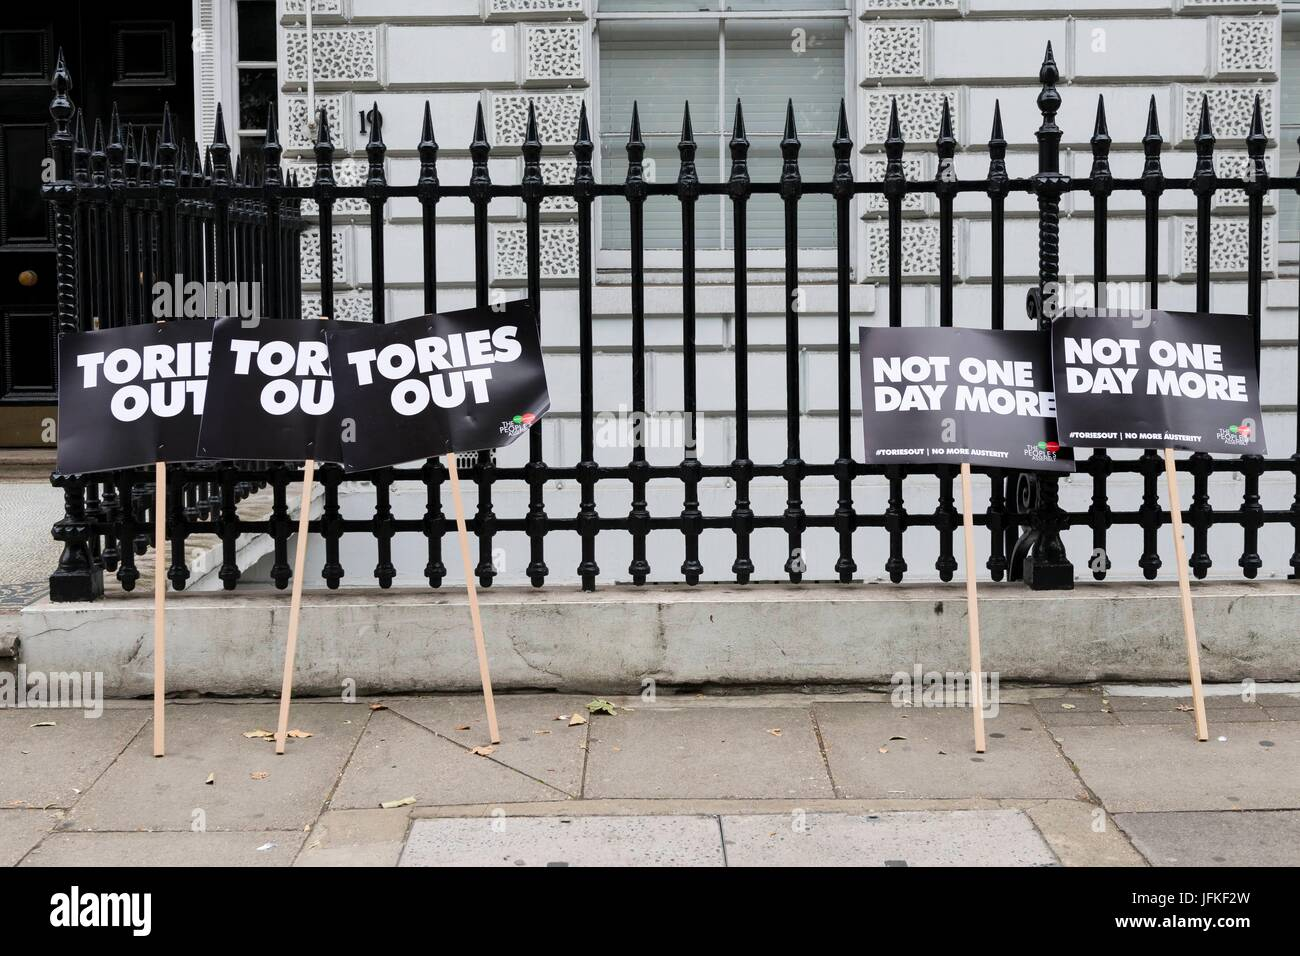 London, United Kingdom Of Great Britain And Northern Ireland. 01st July, 2017. Not One Day More, Tories Out Demonstration. - Stock Image